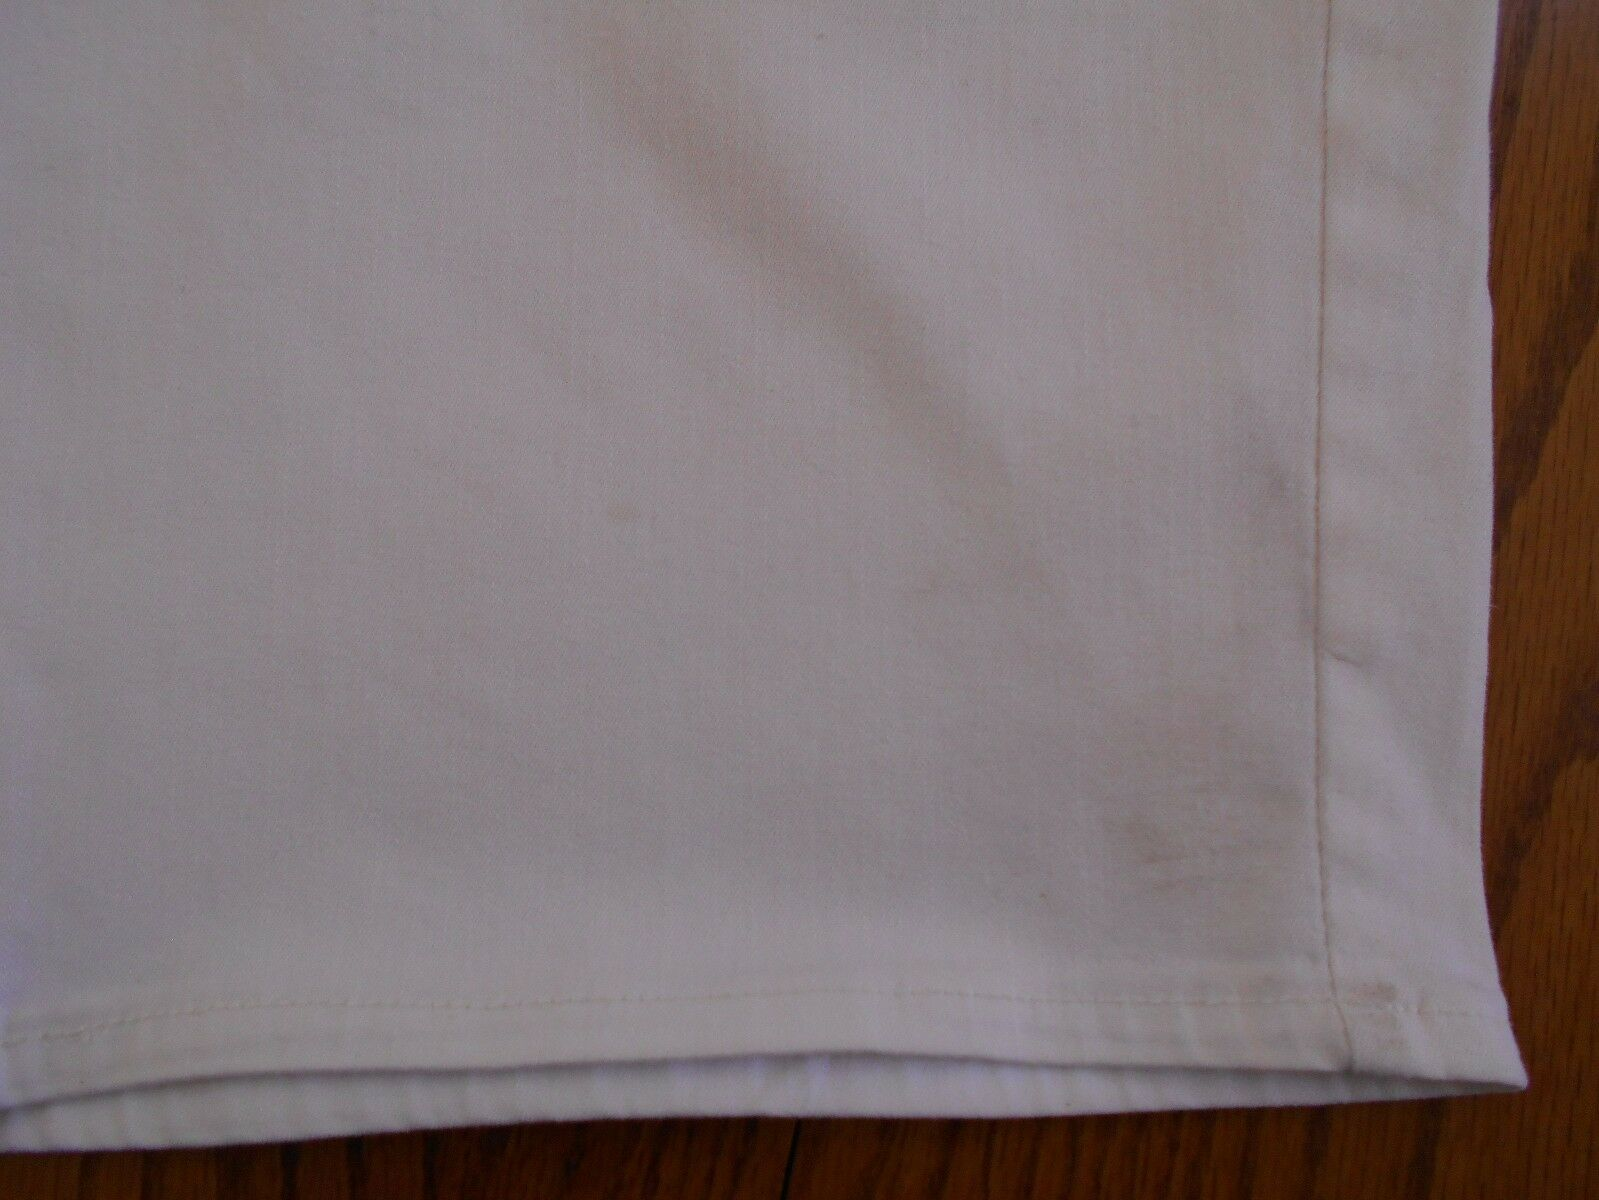 """Riders by Lee Women's Stretch Jean Bermuda SHORTS 14 WAIST 37"""" WHITE SEQUIN   image 9"""